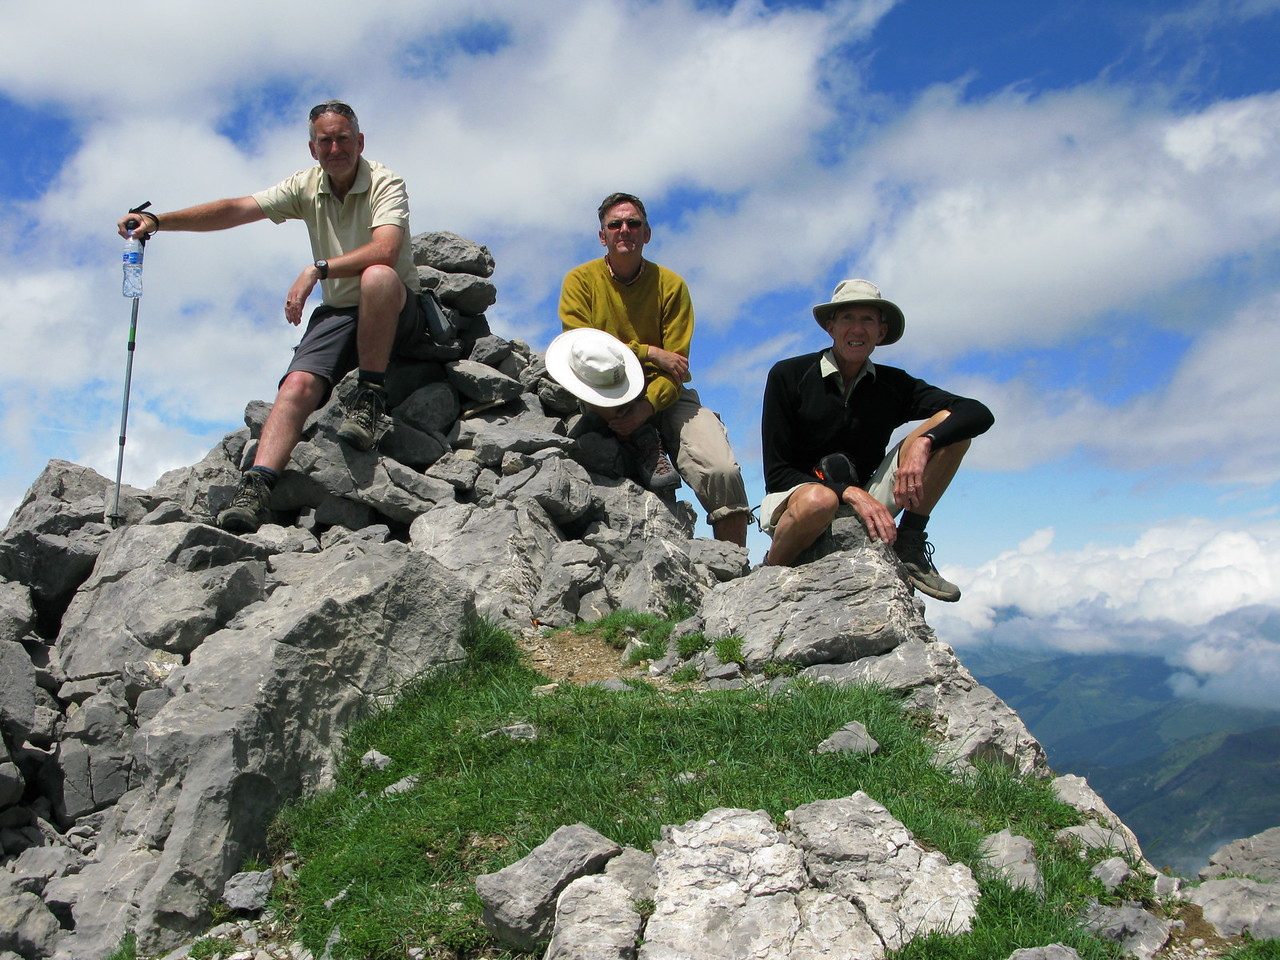 Edward, Gareth and Vic on the summit of Pico Llena de La Garganta 2599m